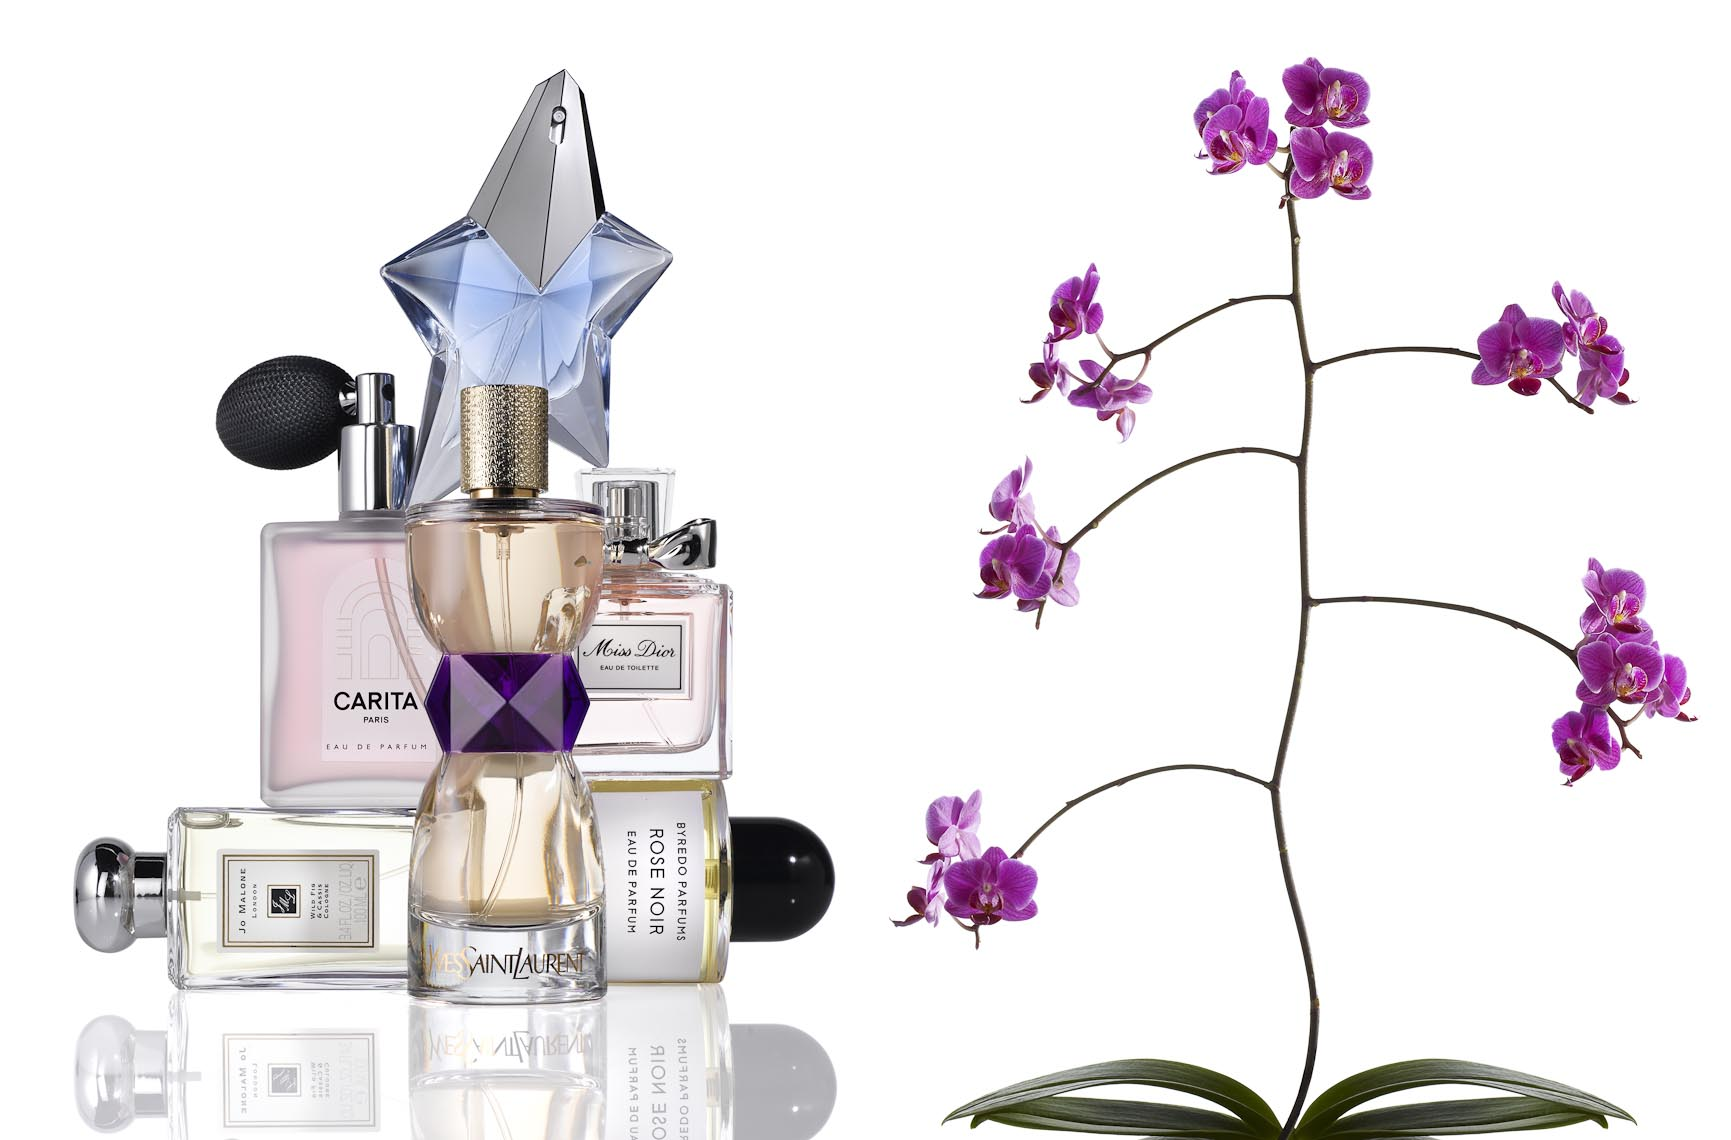 Cosmetics, Perfume Bottles and Orchid with Pink Blossoms - Mike Lorrig